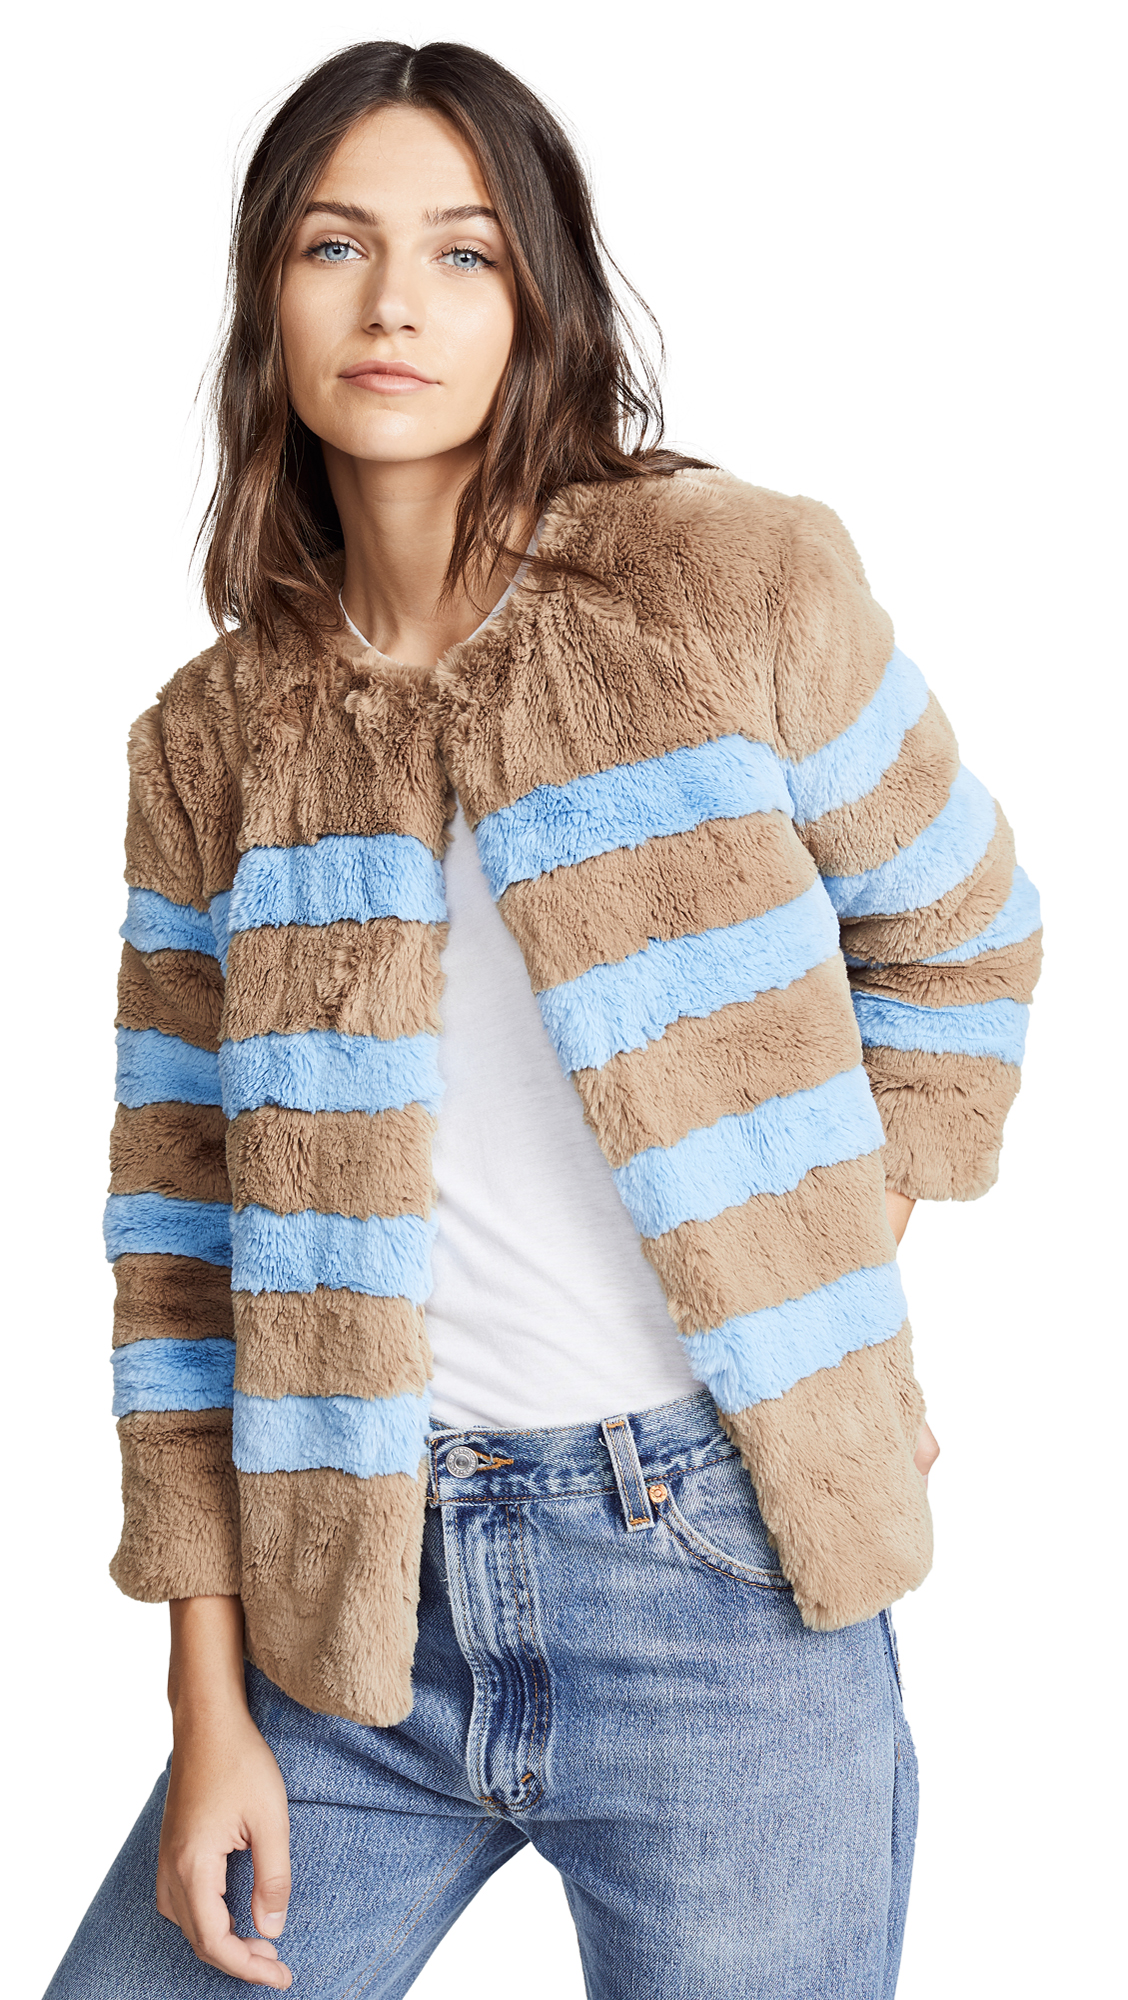 KULE The Bailey Coat In Camel/Light Blue